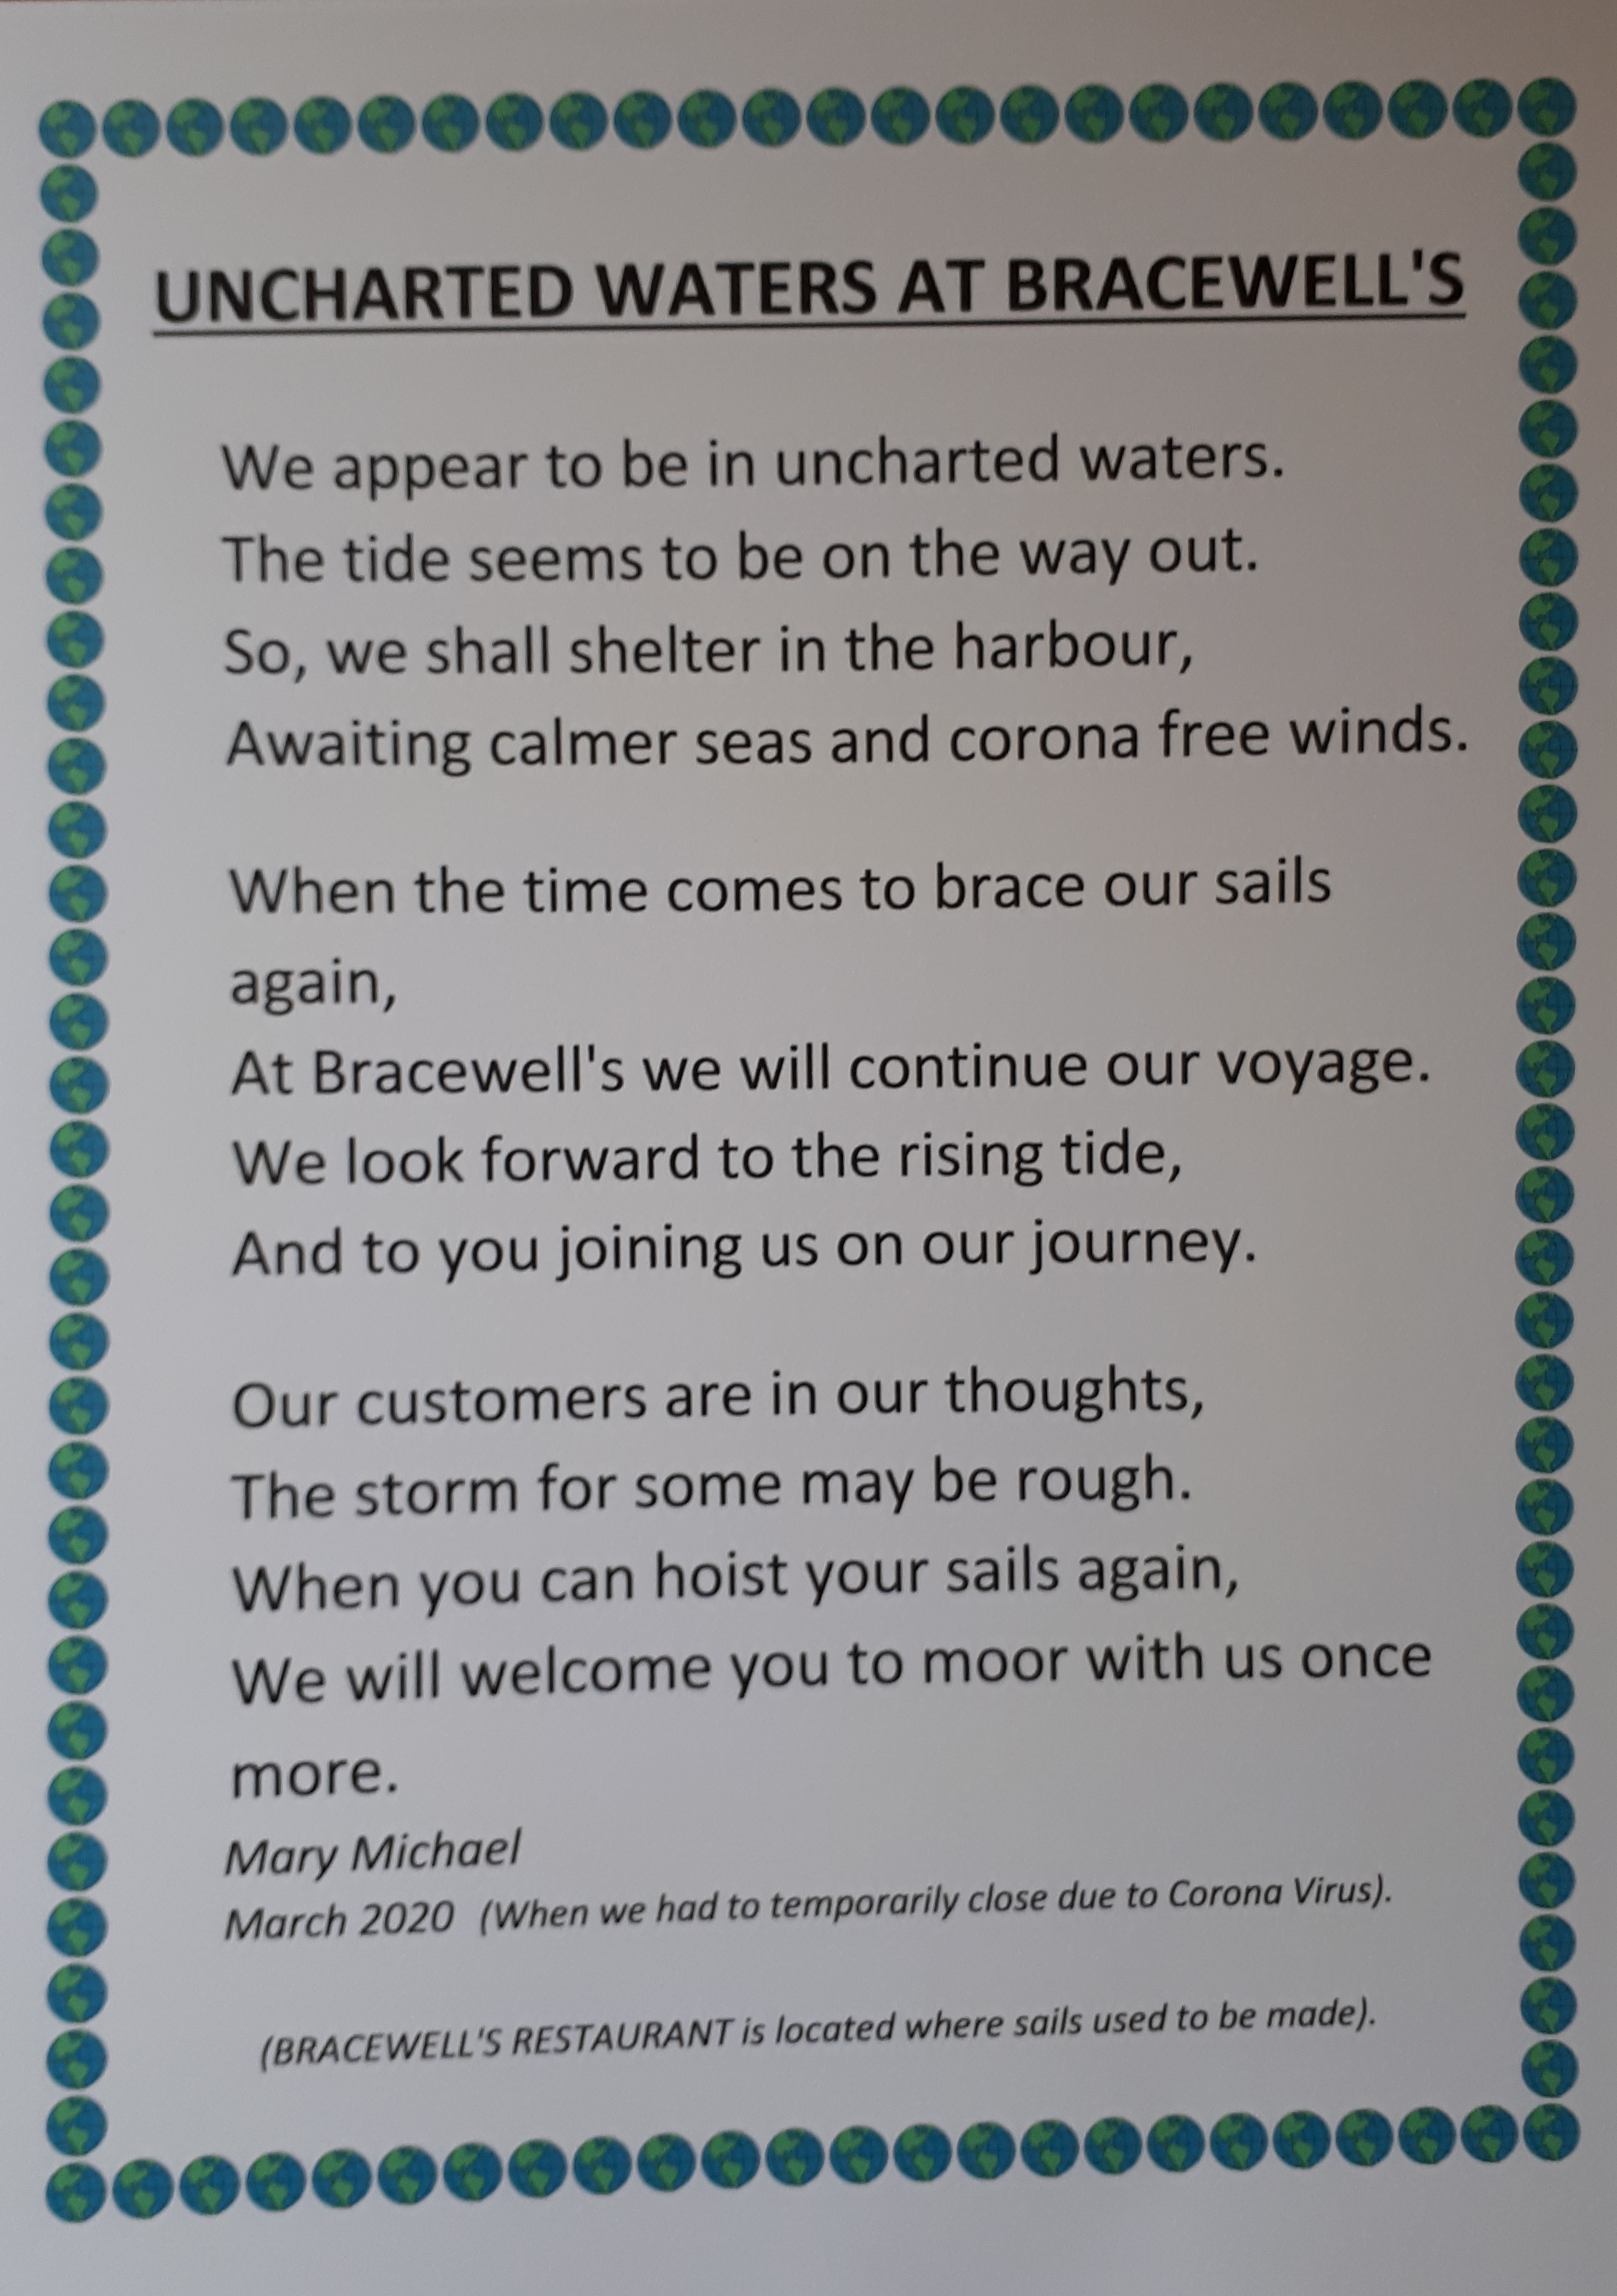 Uncharted Waters at Bracewell's